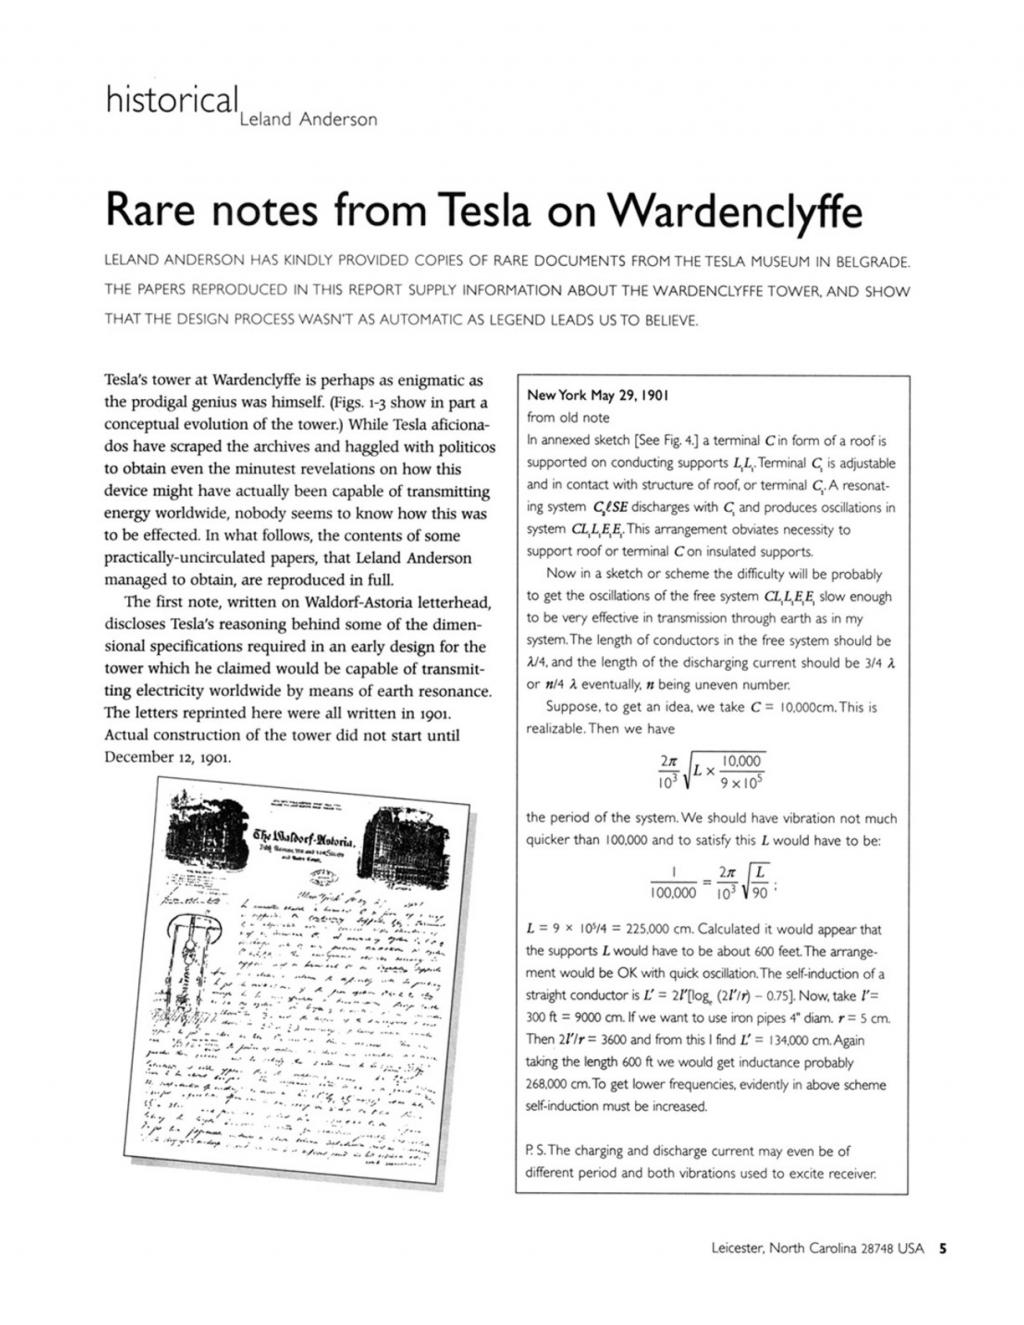 Preview of Rare notes from Tesla on Wardenclyffe article